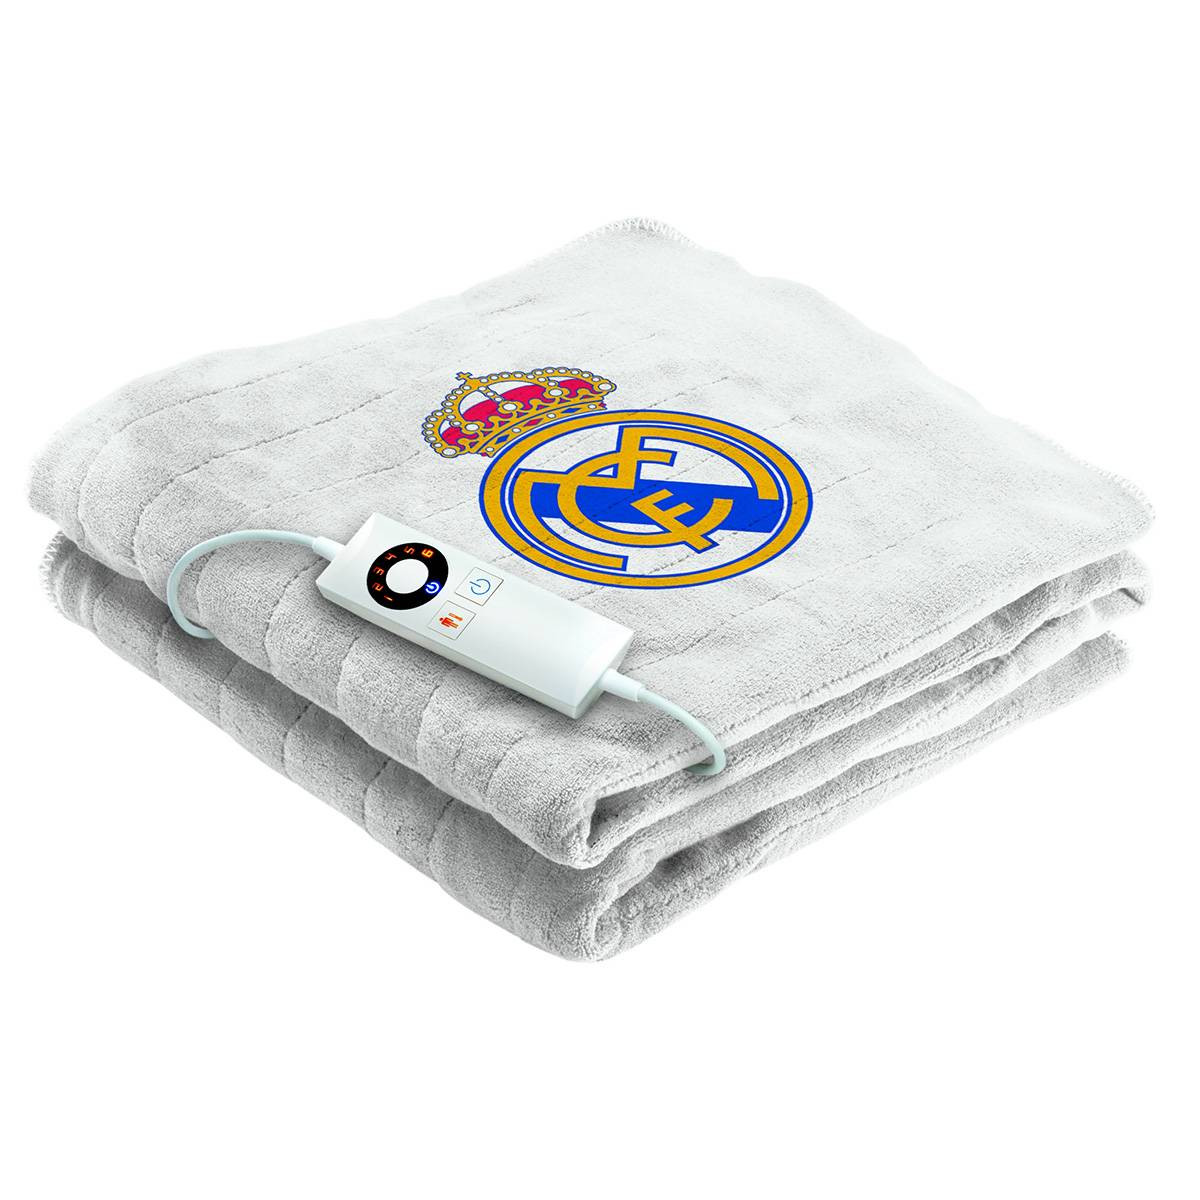 Manta eléctrica sofa Real Madrid Imetec 120 x 160